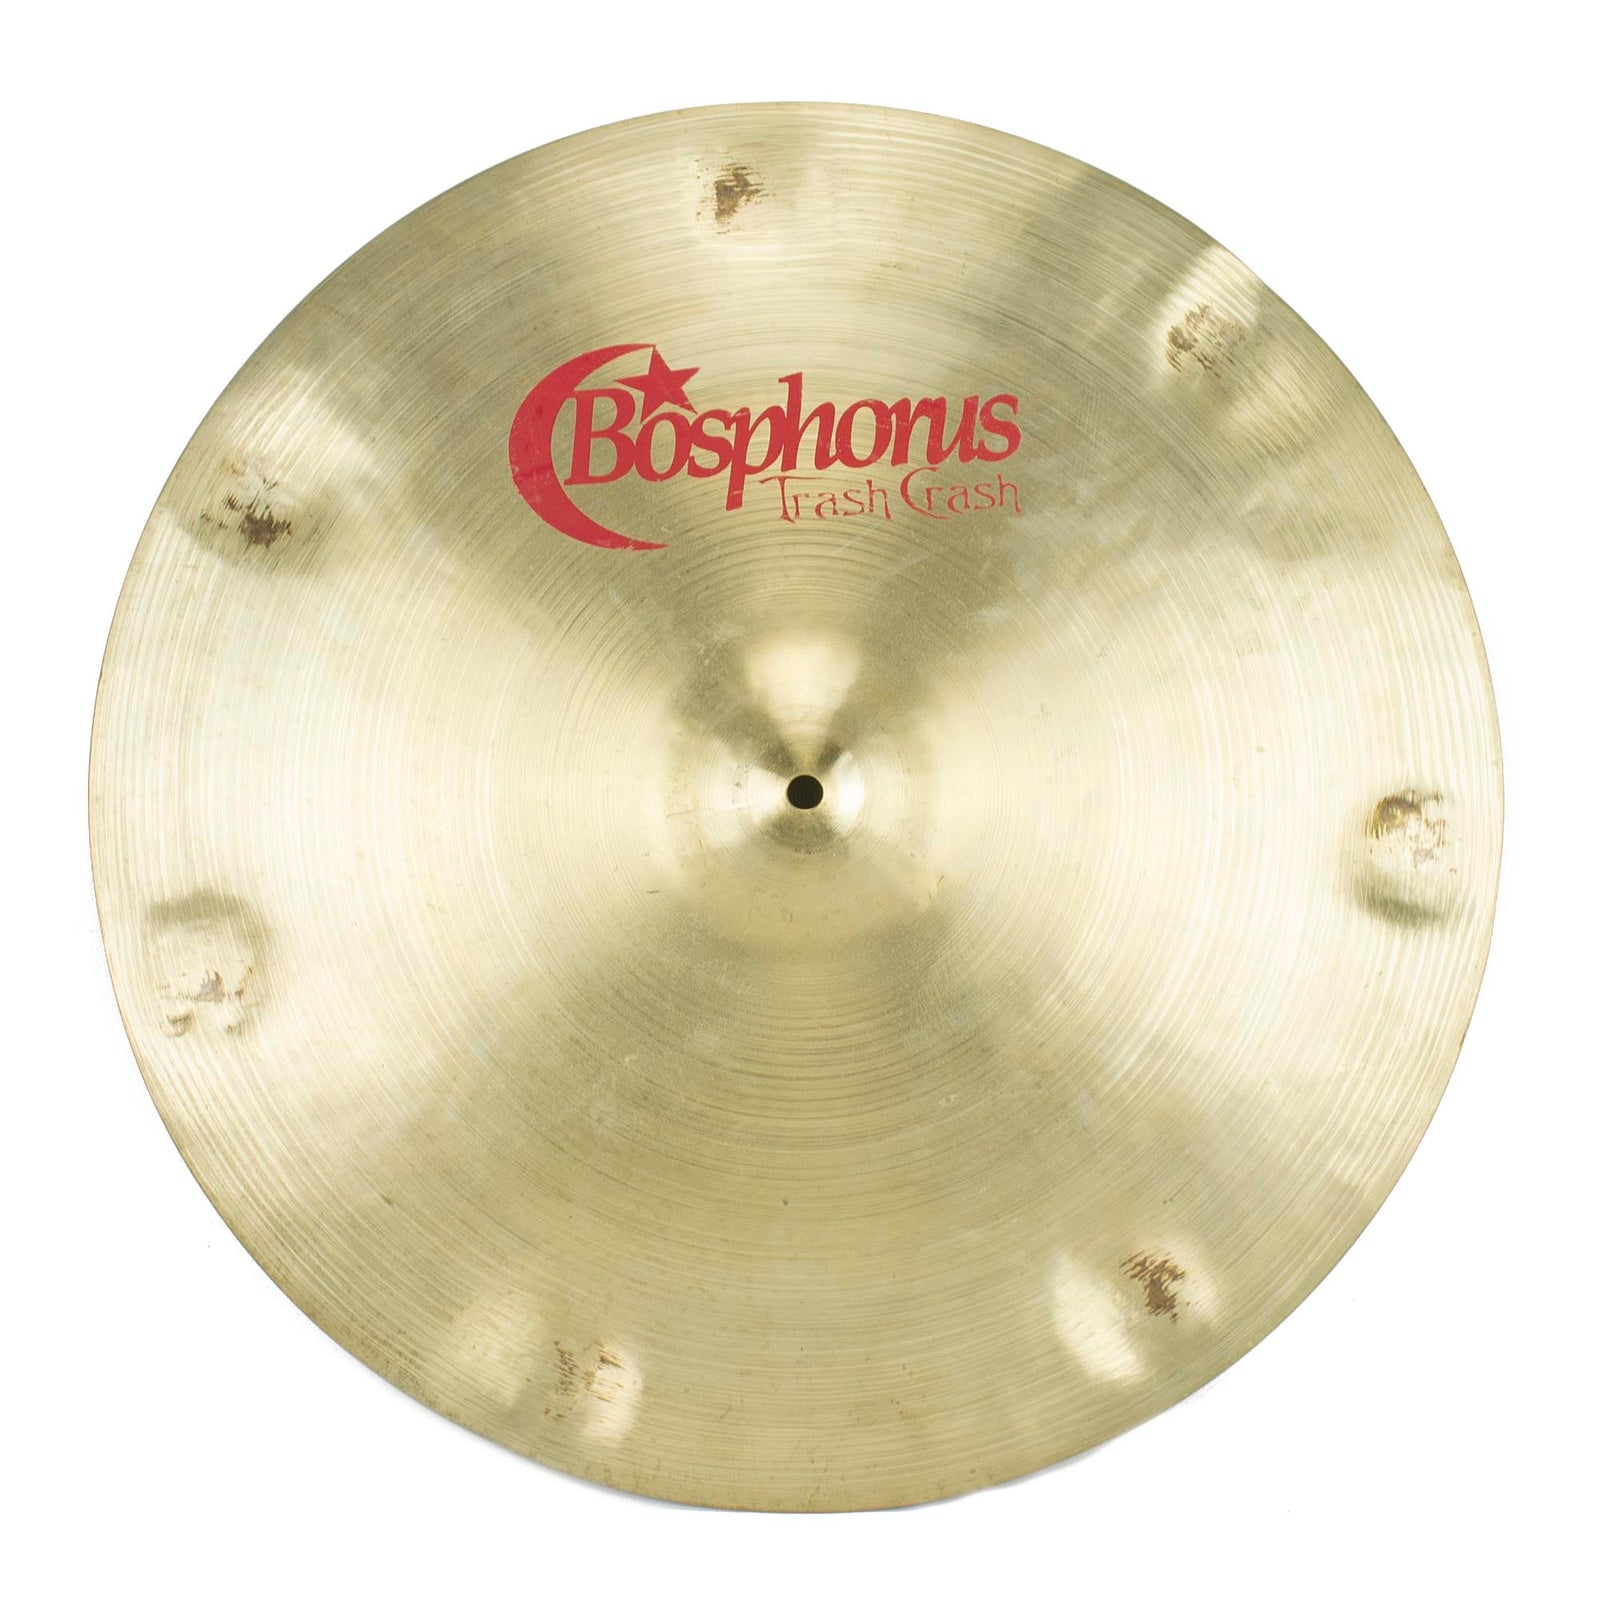 "Bosphorus 20"" Stanton Moore Trash Crash 1676G - Used"